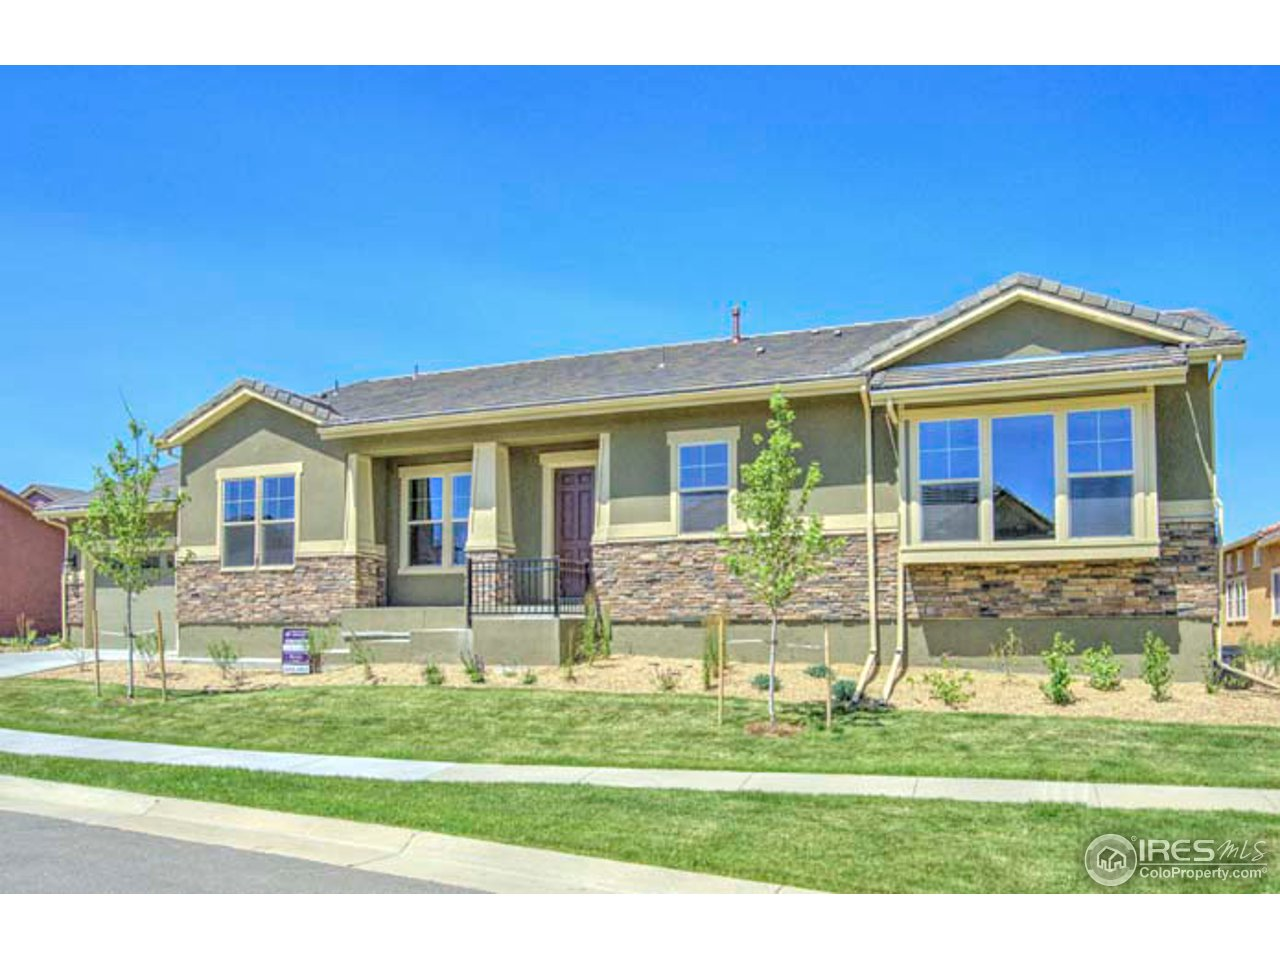 2444 Reserve St, Erie, CO 80516